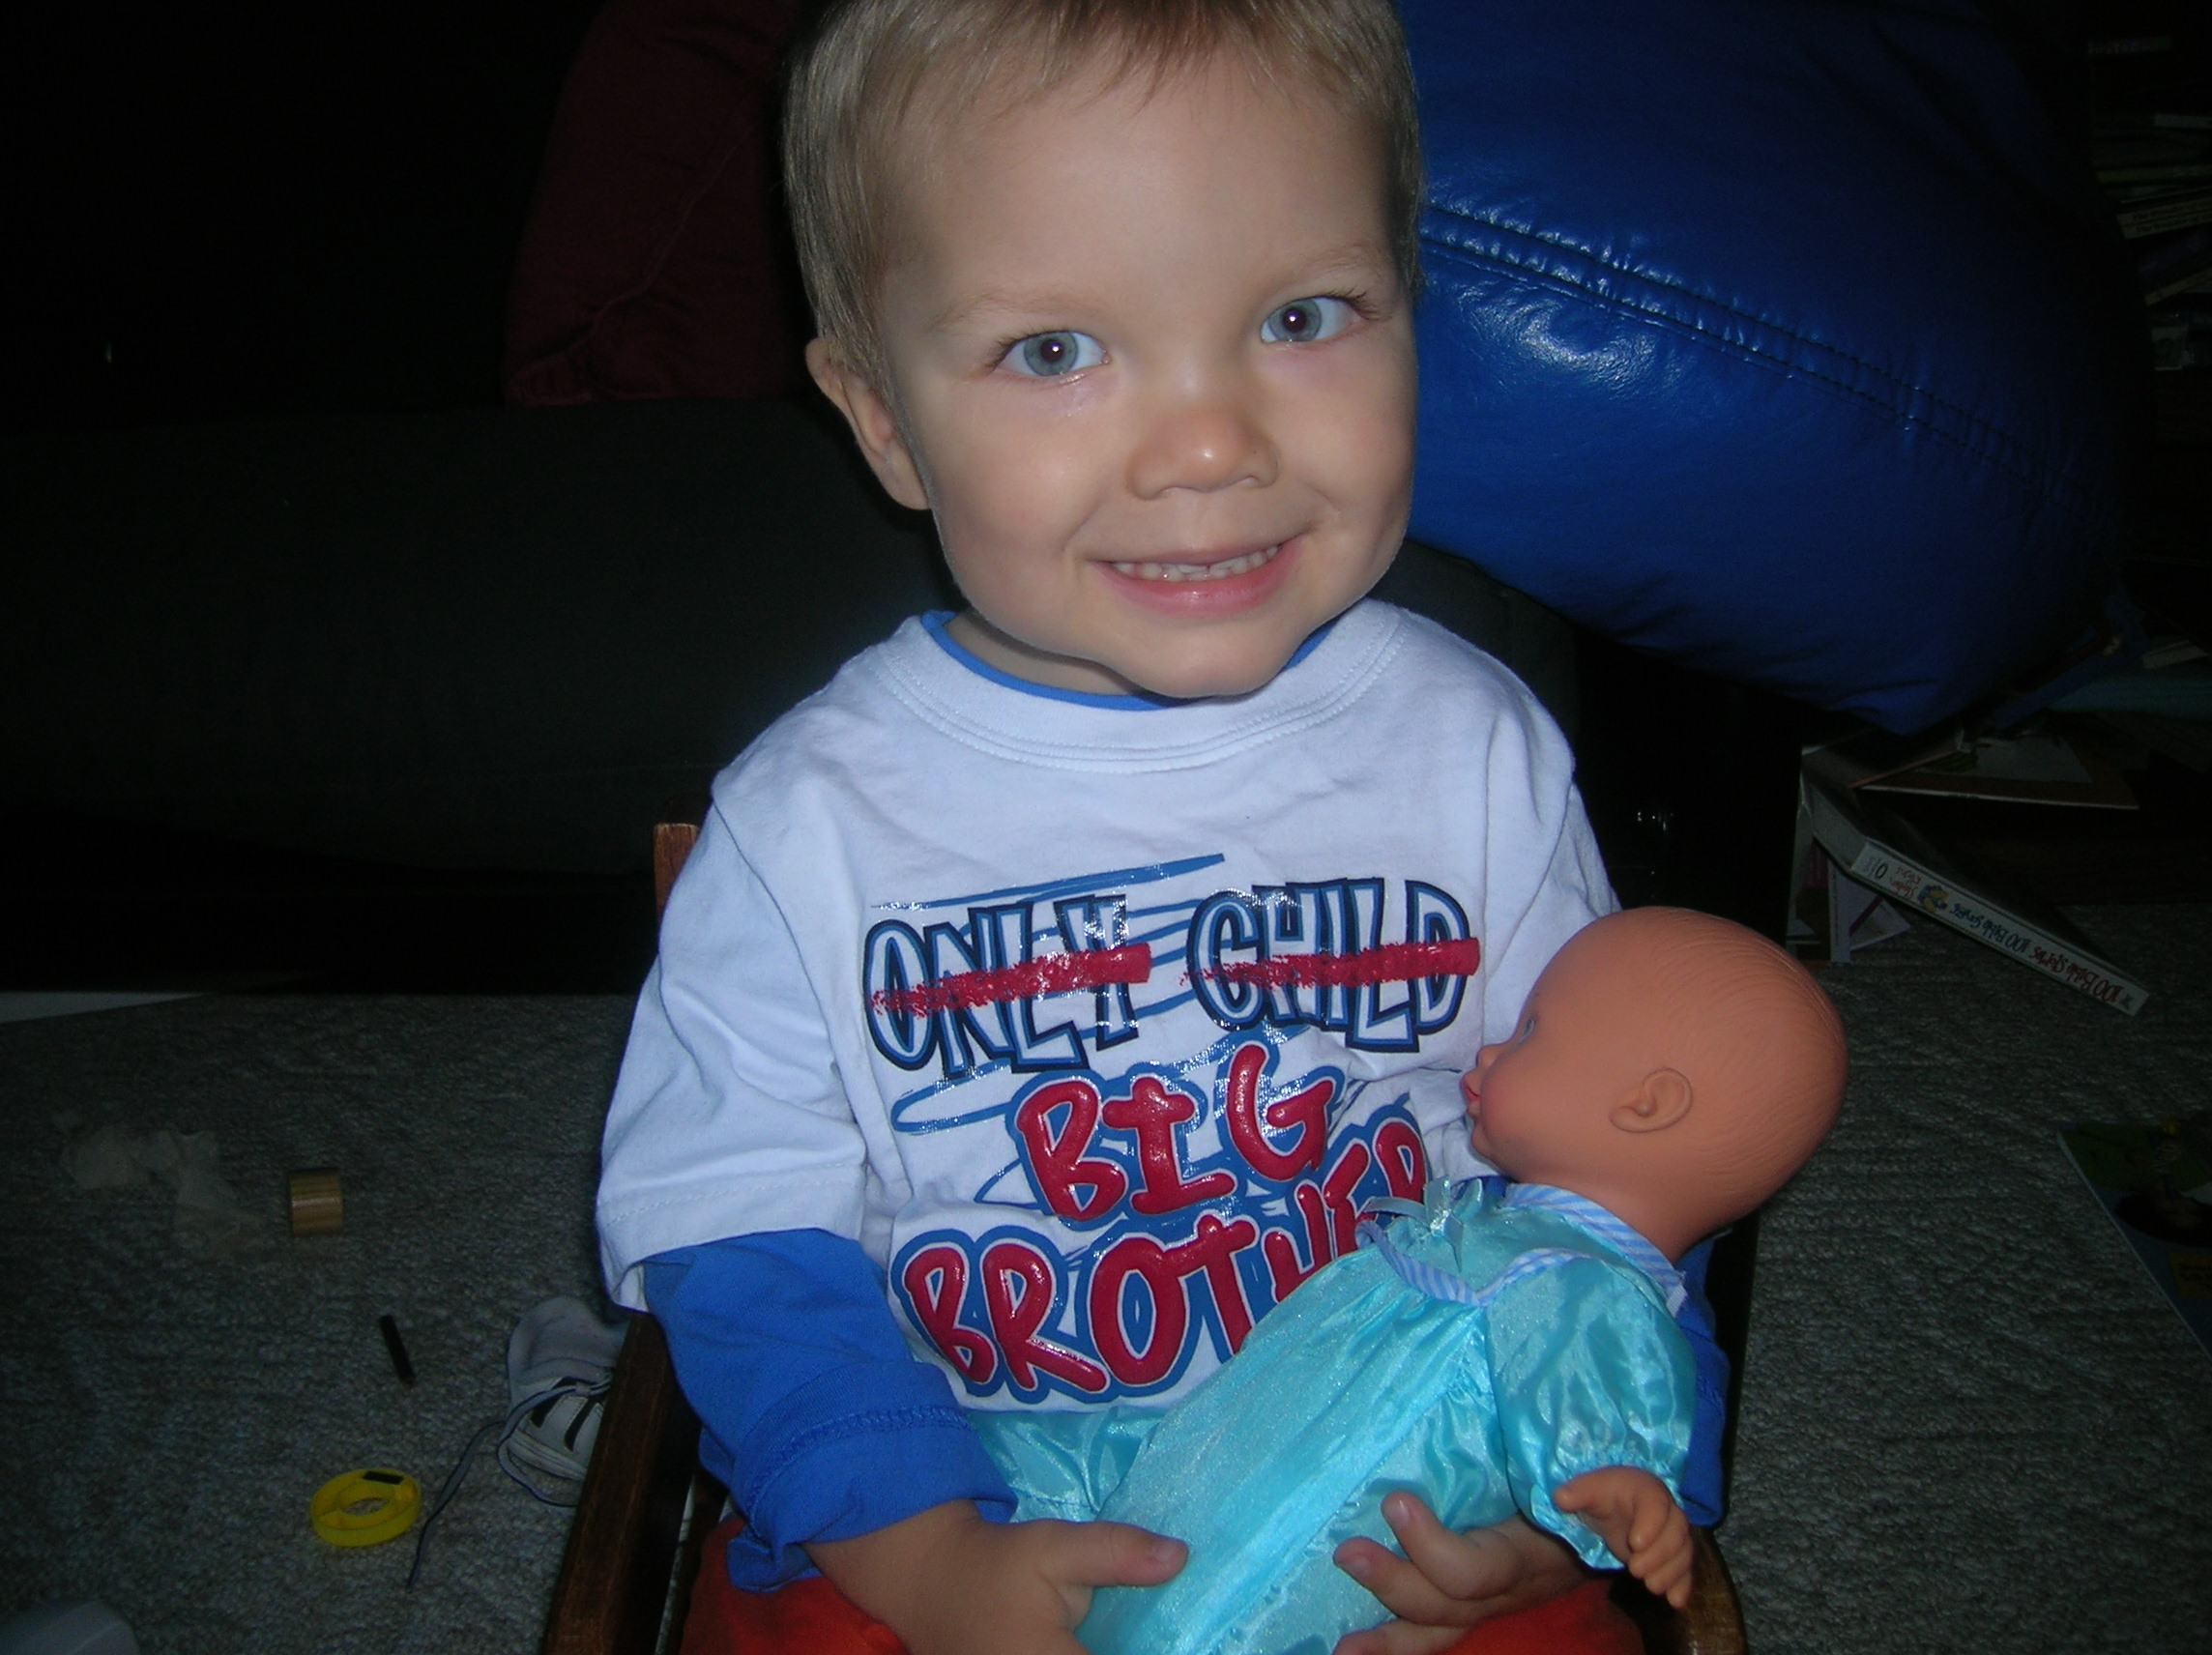 Practicing being a big brother - wearing his new shirt from Grandma